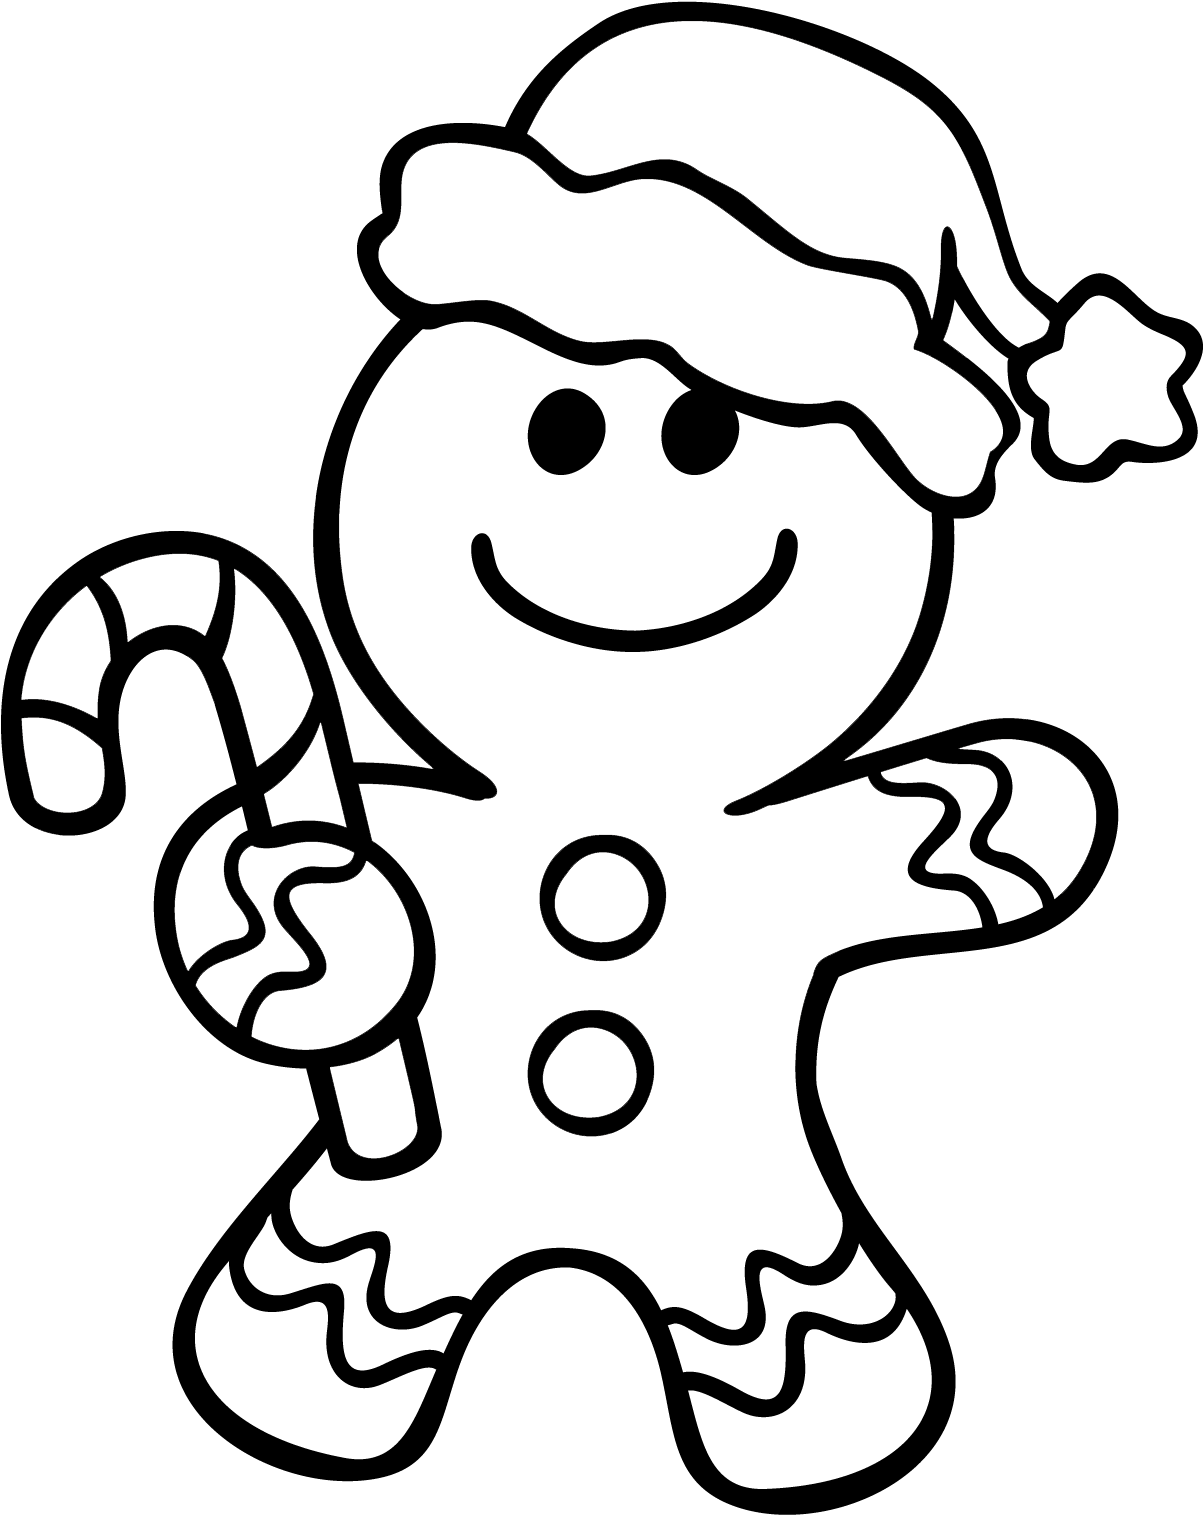 Gingerbread Man Coloring Pages.